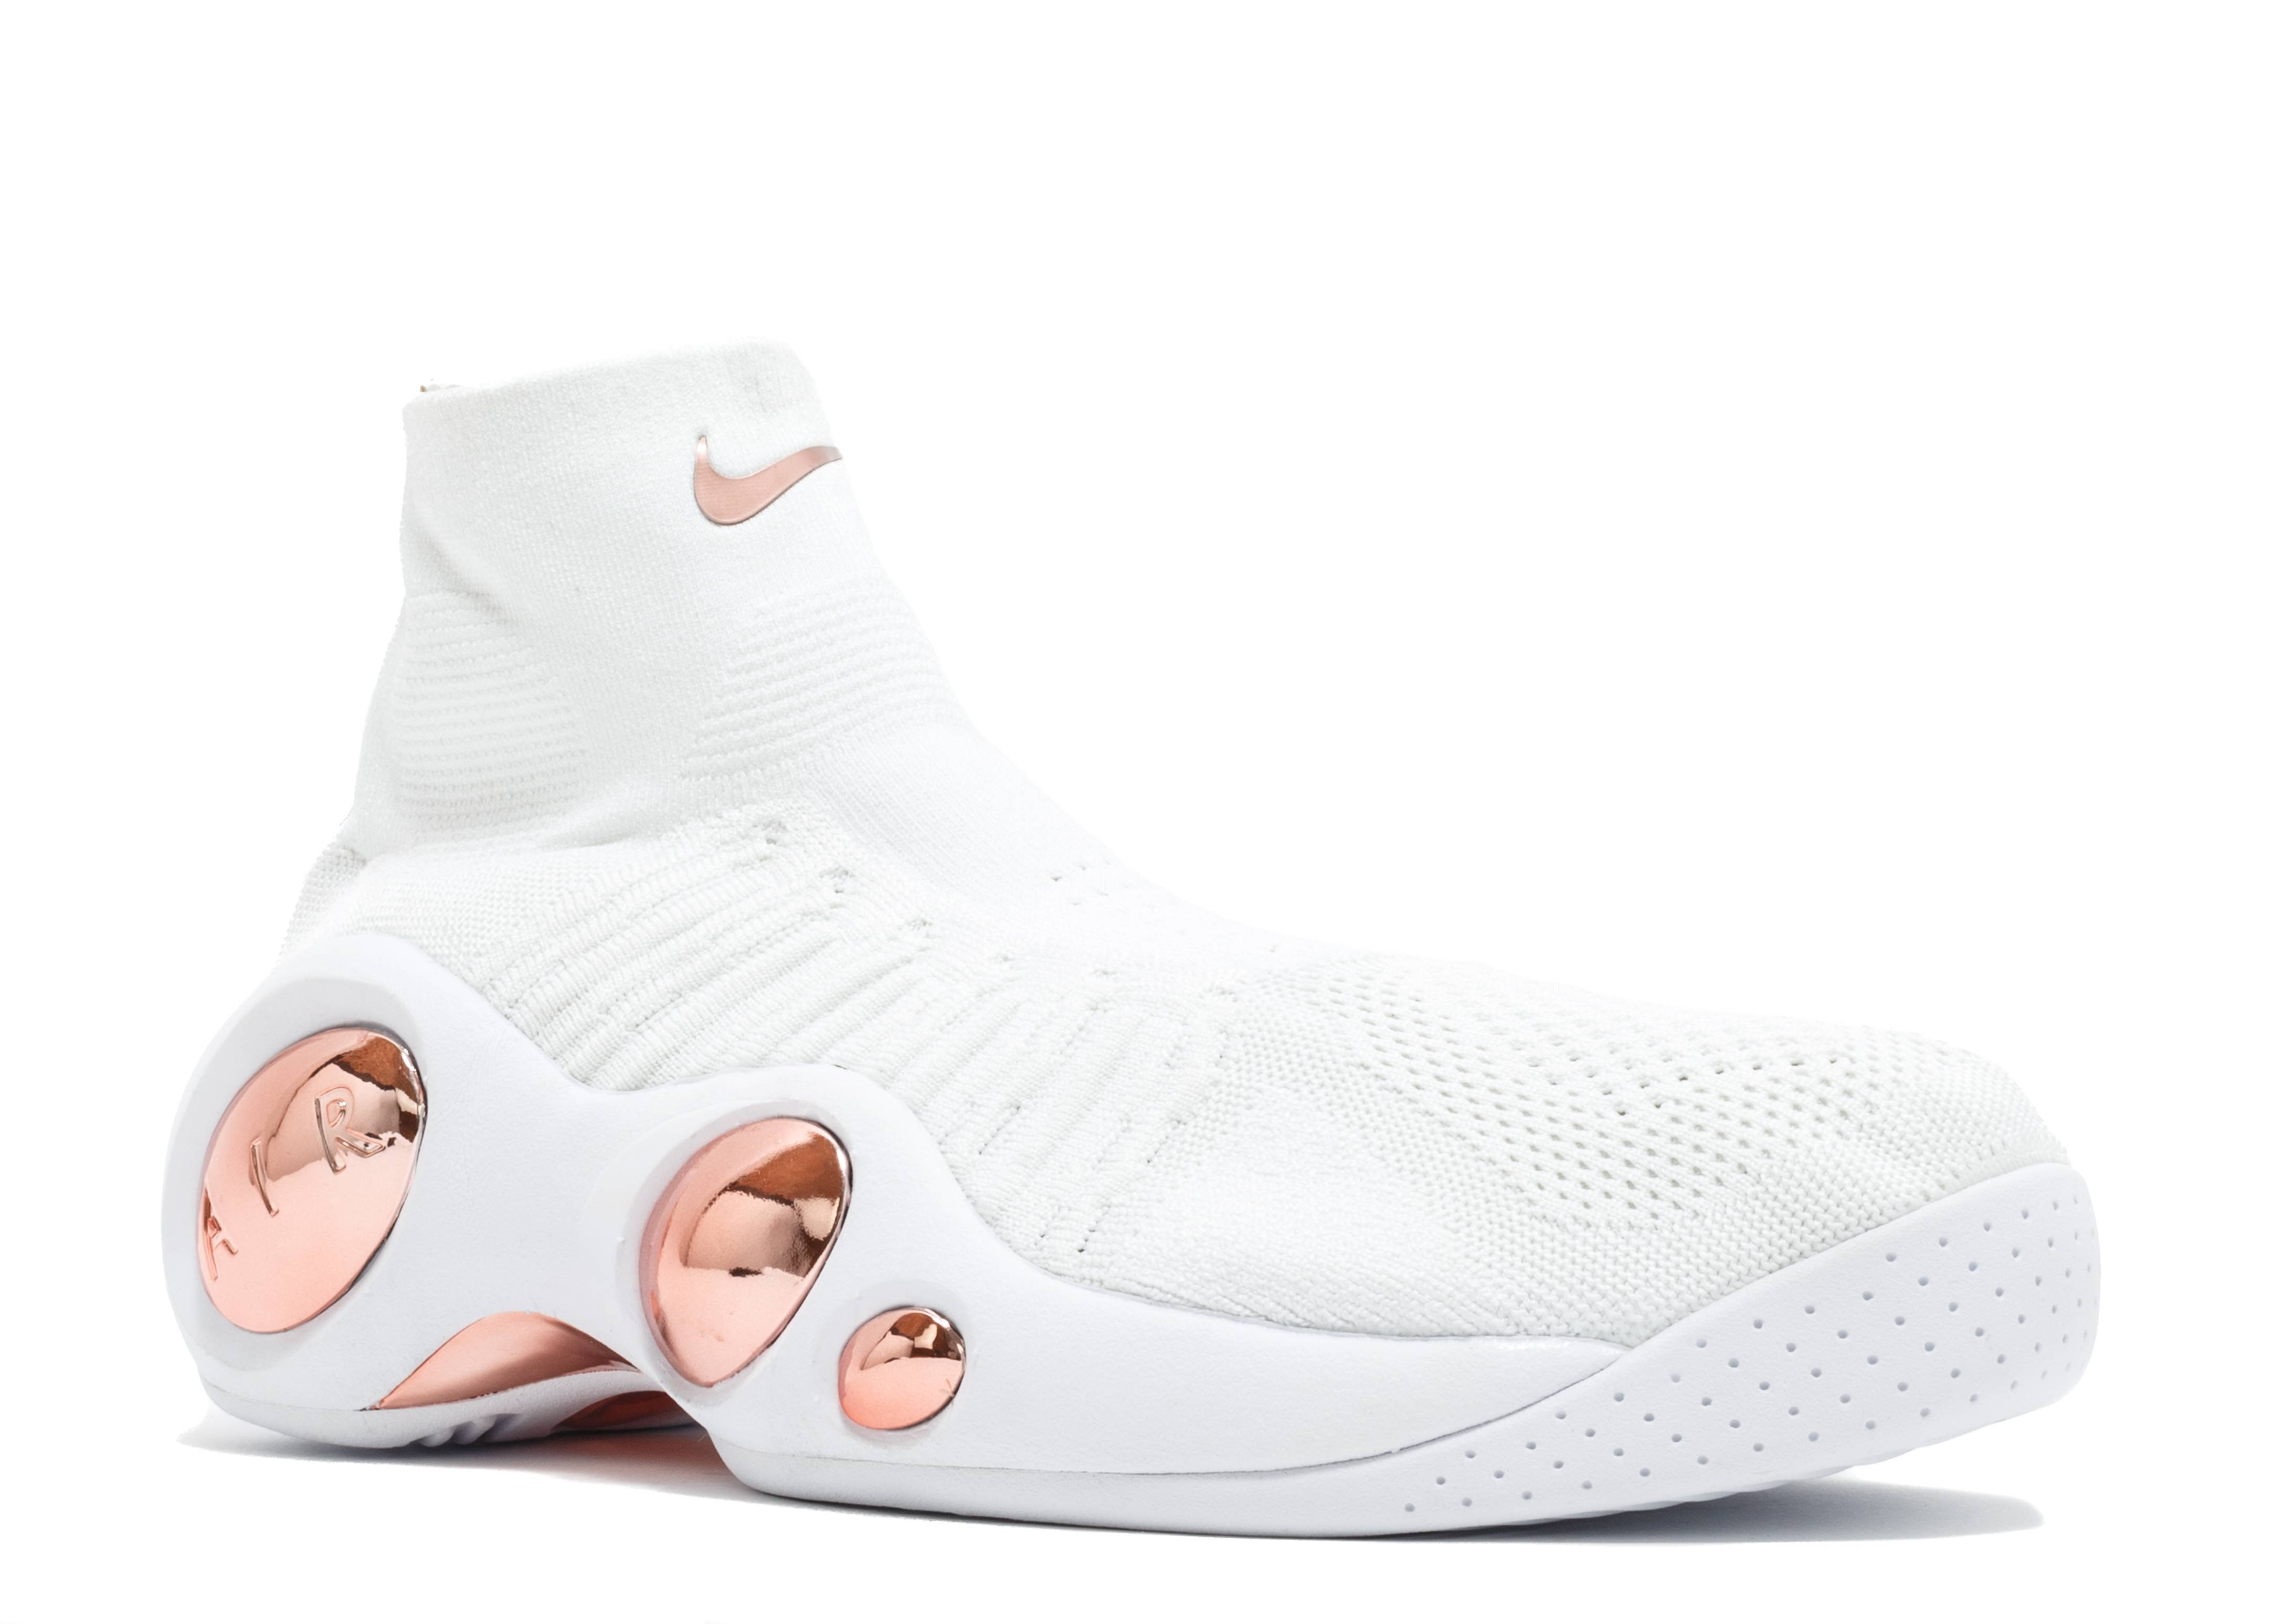 9002d55251f Nike Flight Bonafide - Nike - 742127 229 - white rose gold-vachetta ...